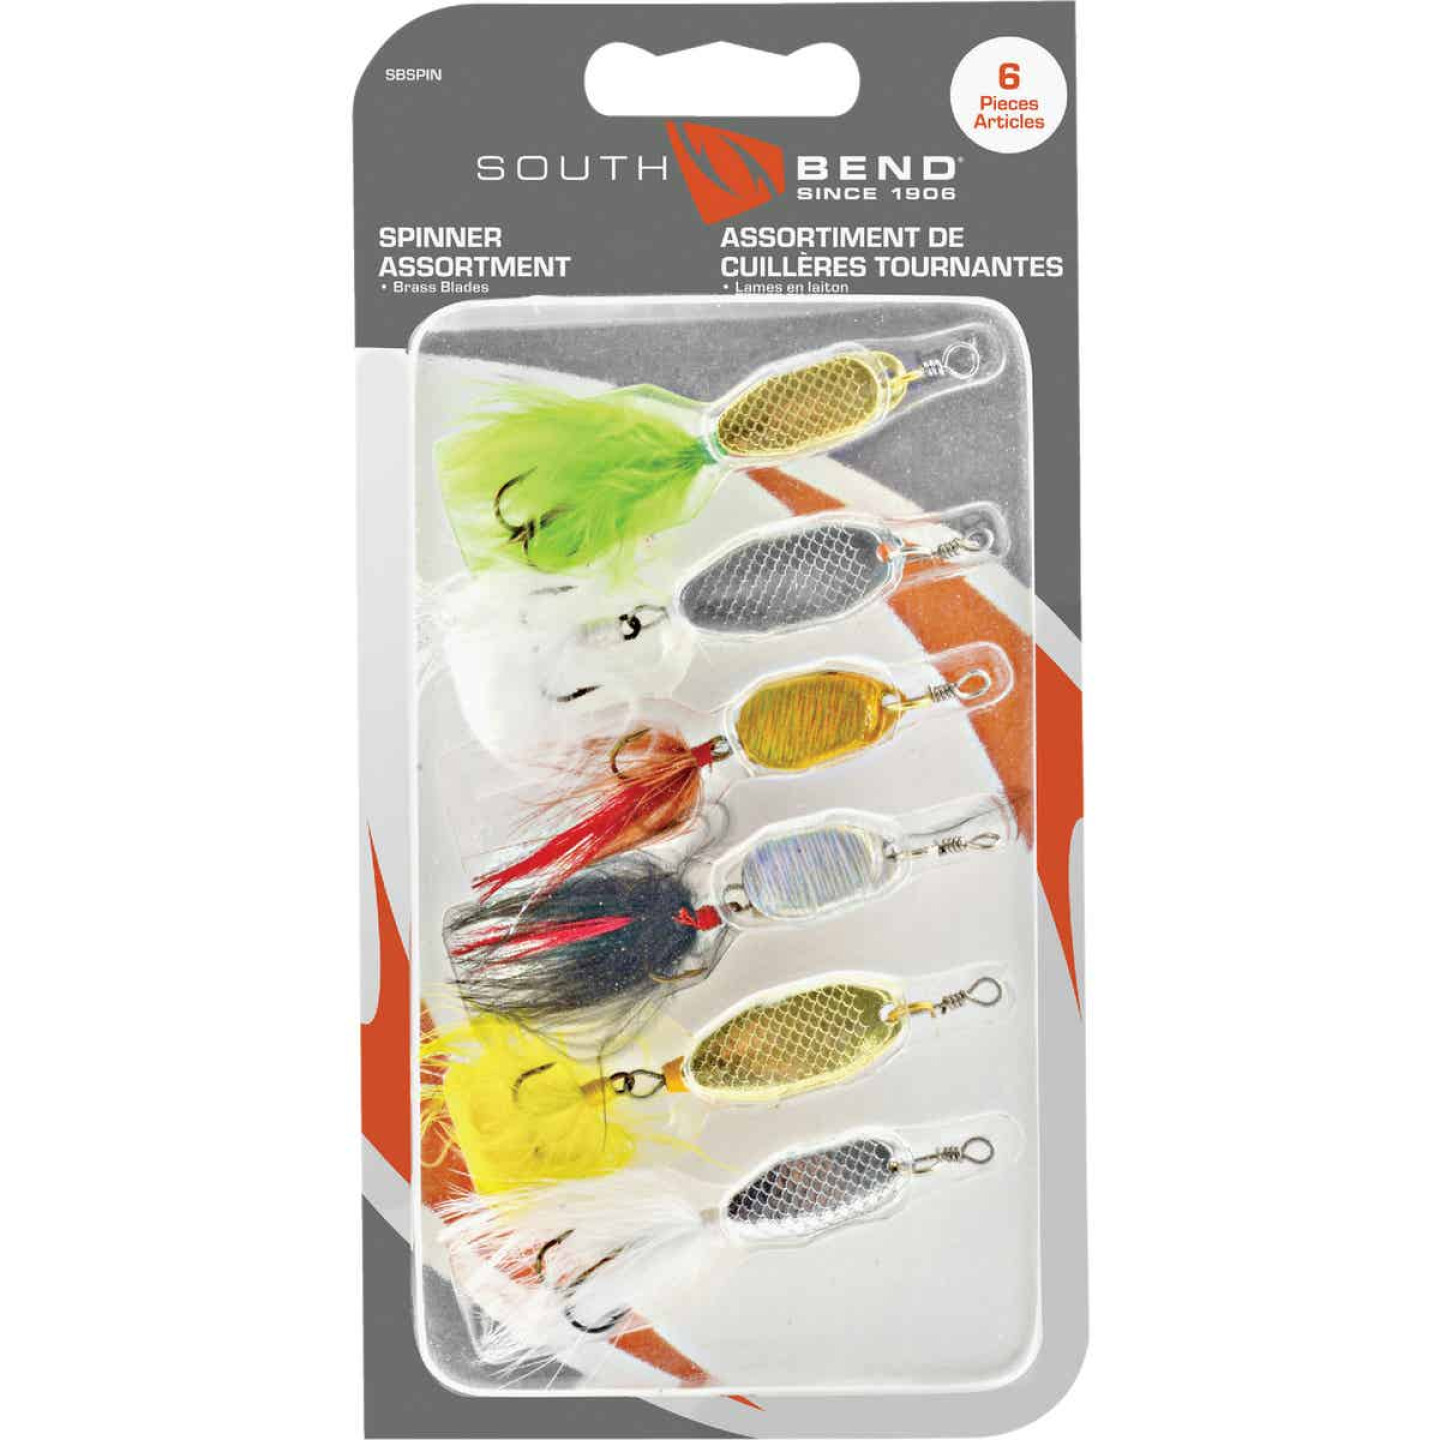 SouthBend 6-Piece Spinner Fishing Lure Kit Image 1